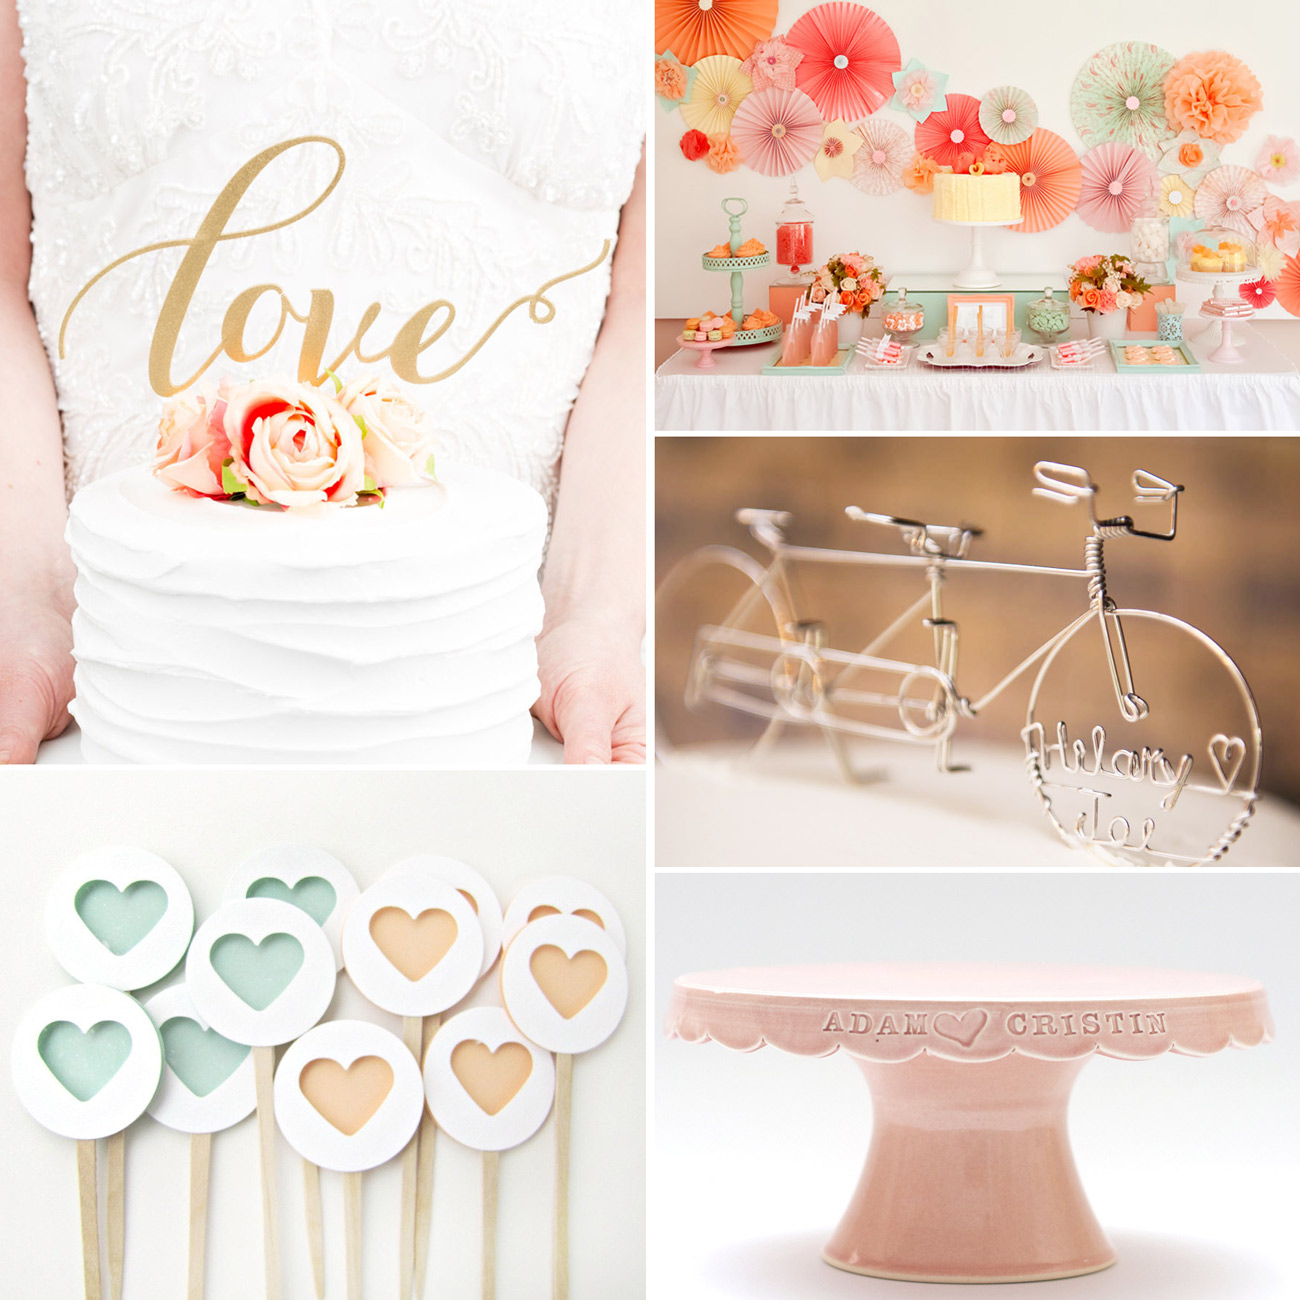 Etsy Cake Stands and Cake Toppers